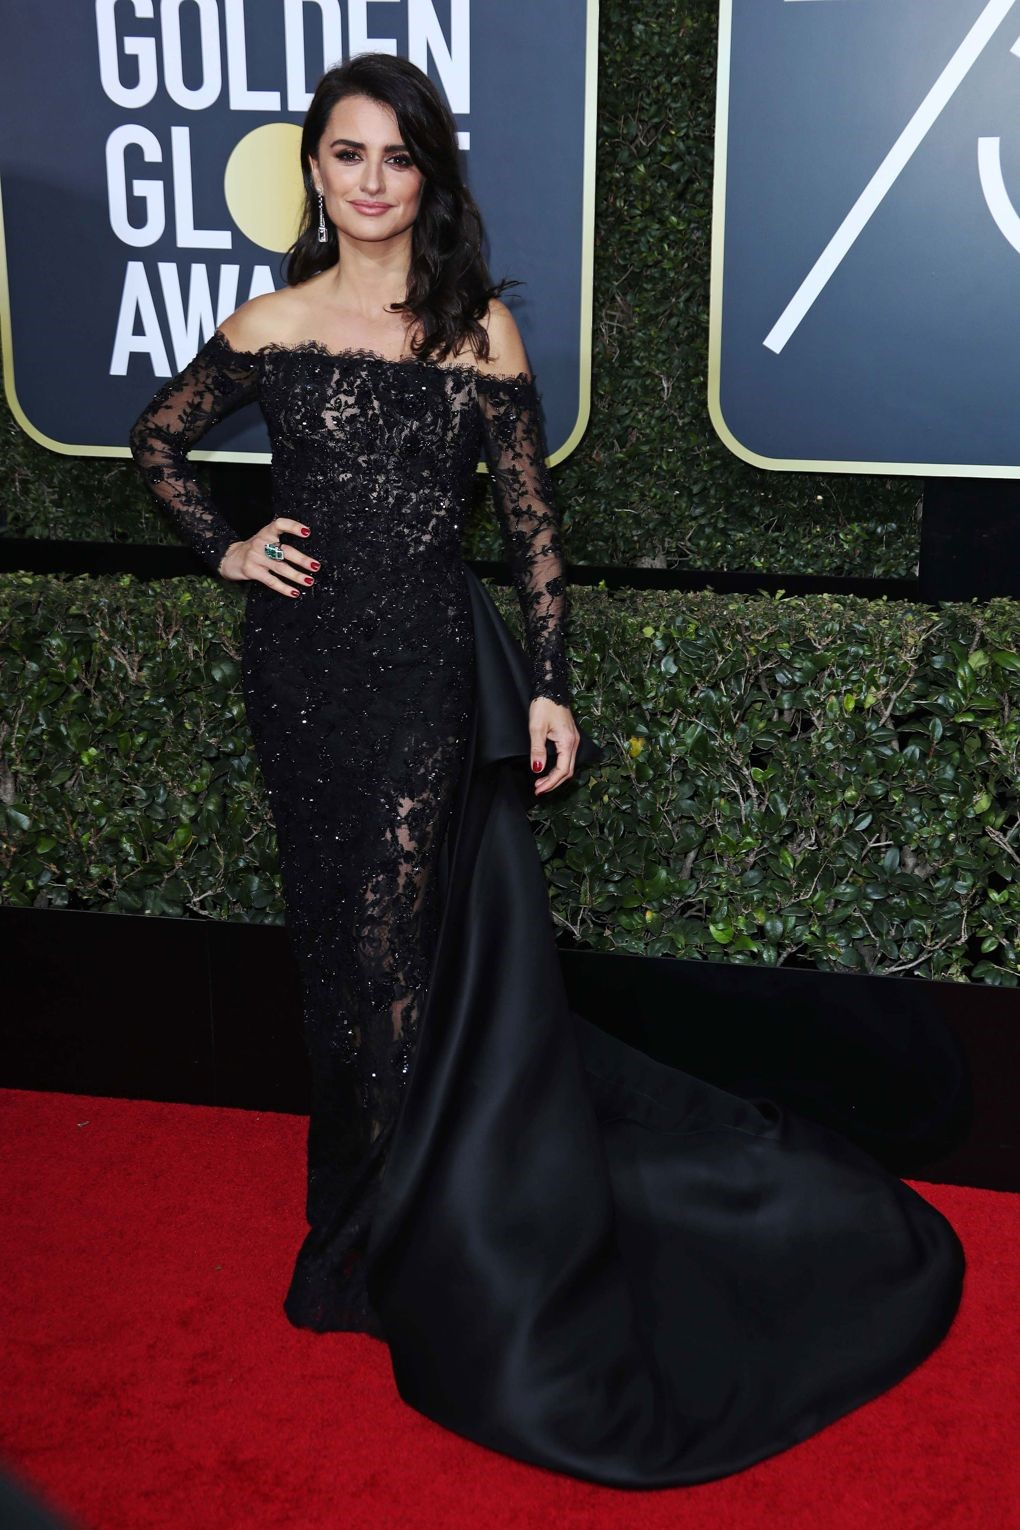 The ever-Gorgeous Penelope Cruz looked splendid in a Ralph and Russo Couture. golden globes 2018 - 8 - JD's top 13 red carpet looks of Golden Globes 2018